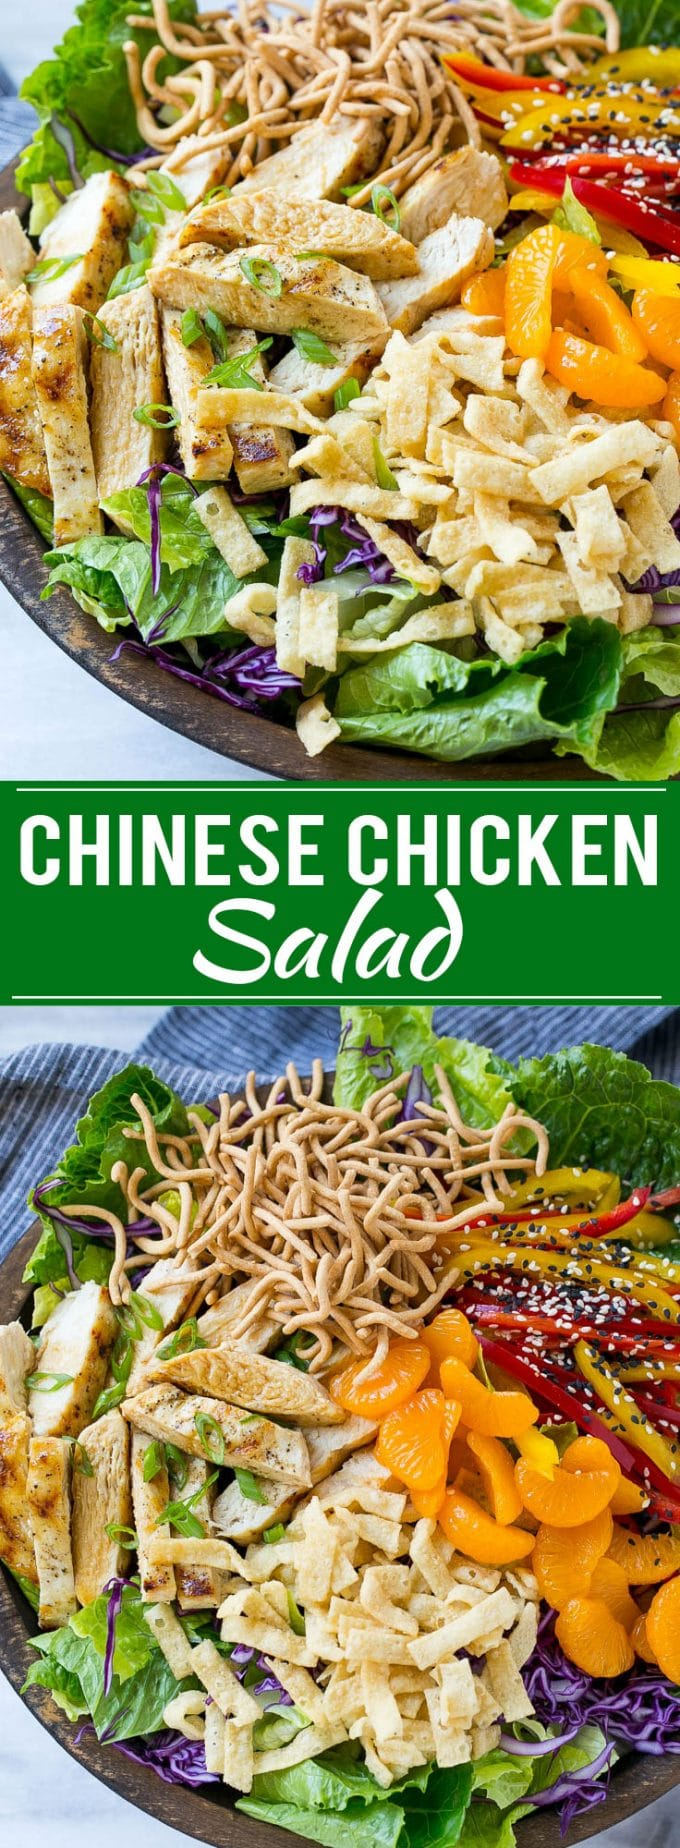 Chinese Chicken Salad Recipe | Asian Chicken Salad | Easy Salad Recipe | Chicken Salad